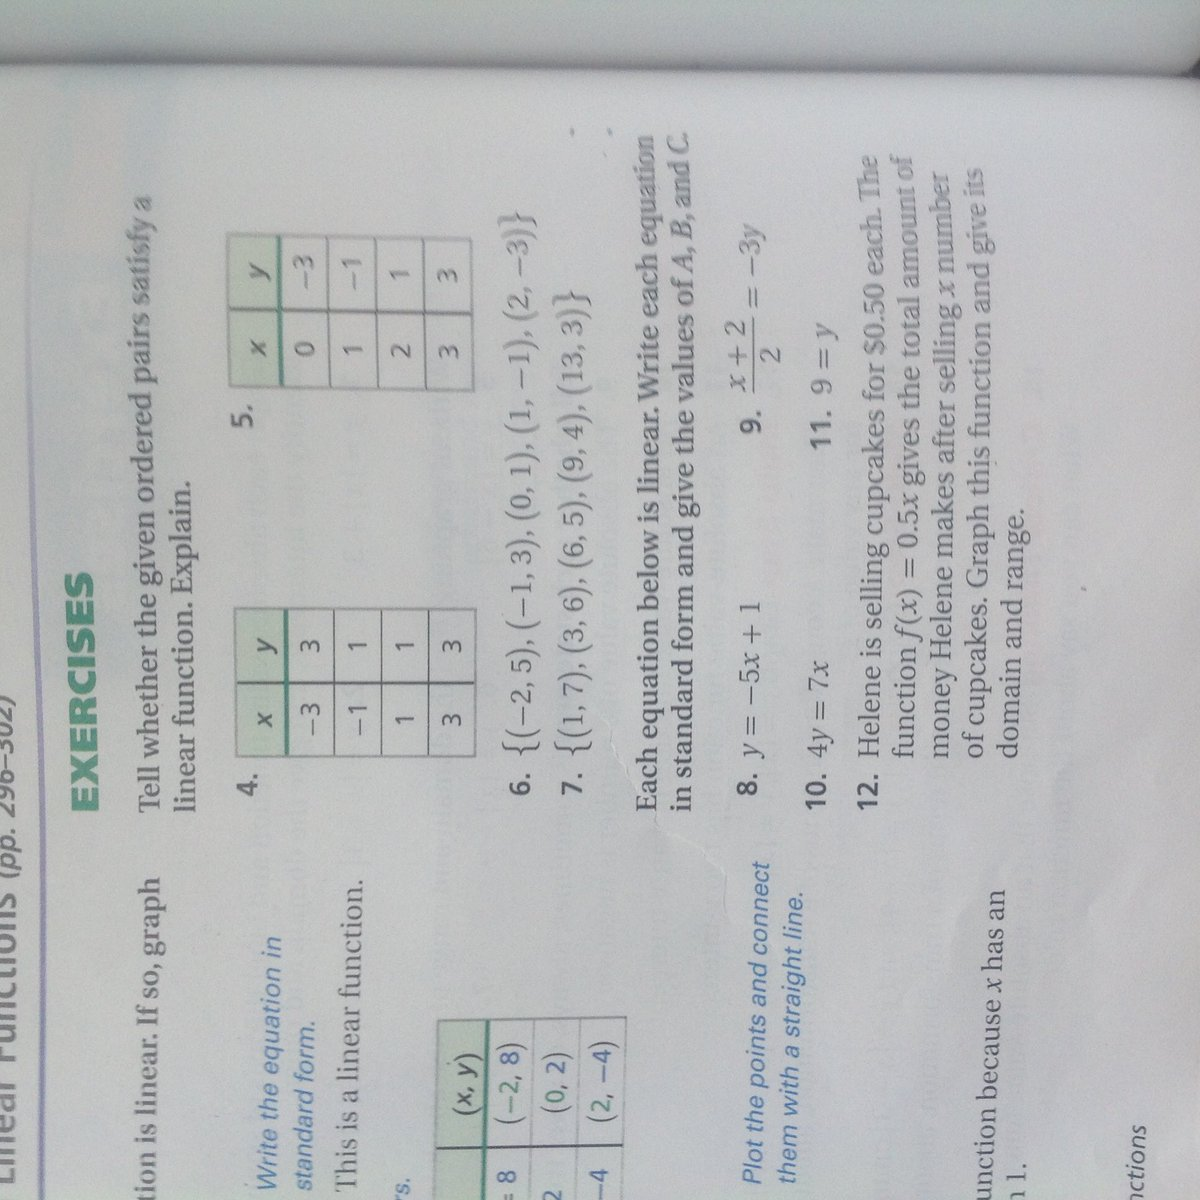 Mr decoteau on twitter b period algebra 1 page 365 examples 1 7 mr decoteau on twitter b period algebra 1 page 365 examples 1 7 and 14 19 pages 368 369 examples 2 32 evens skip 8 12 httpst4jeabpfz3m falaconquin